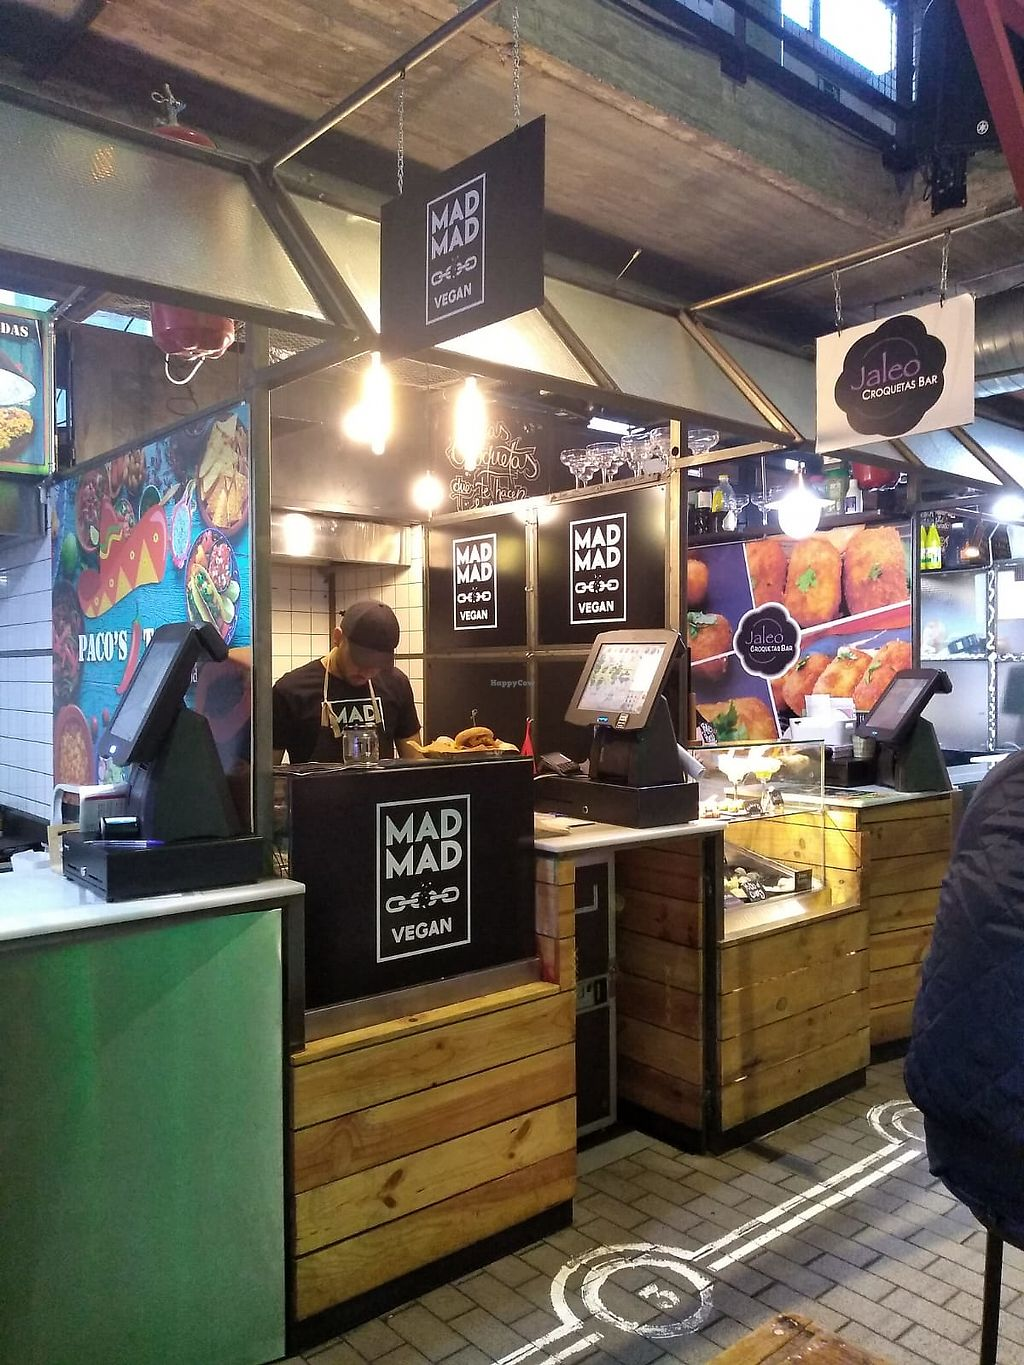 Mad Mad Vegan Madrid Review Great Food By Fivevegans